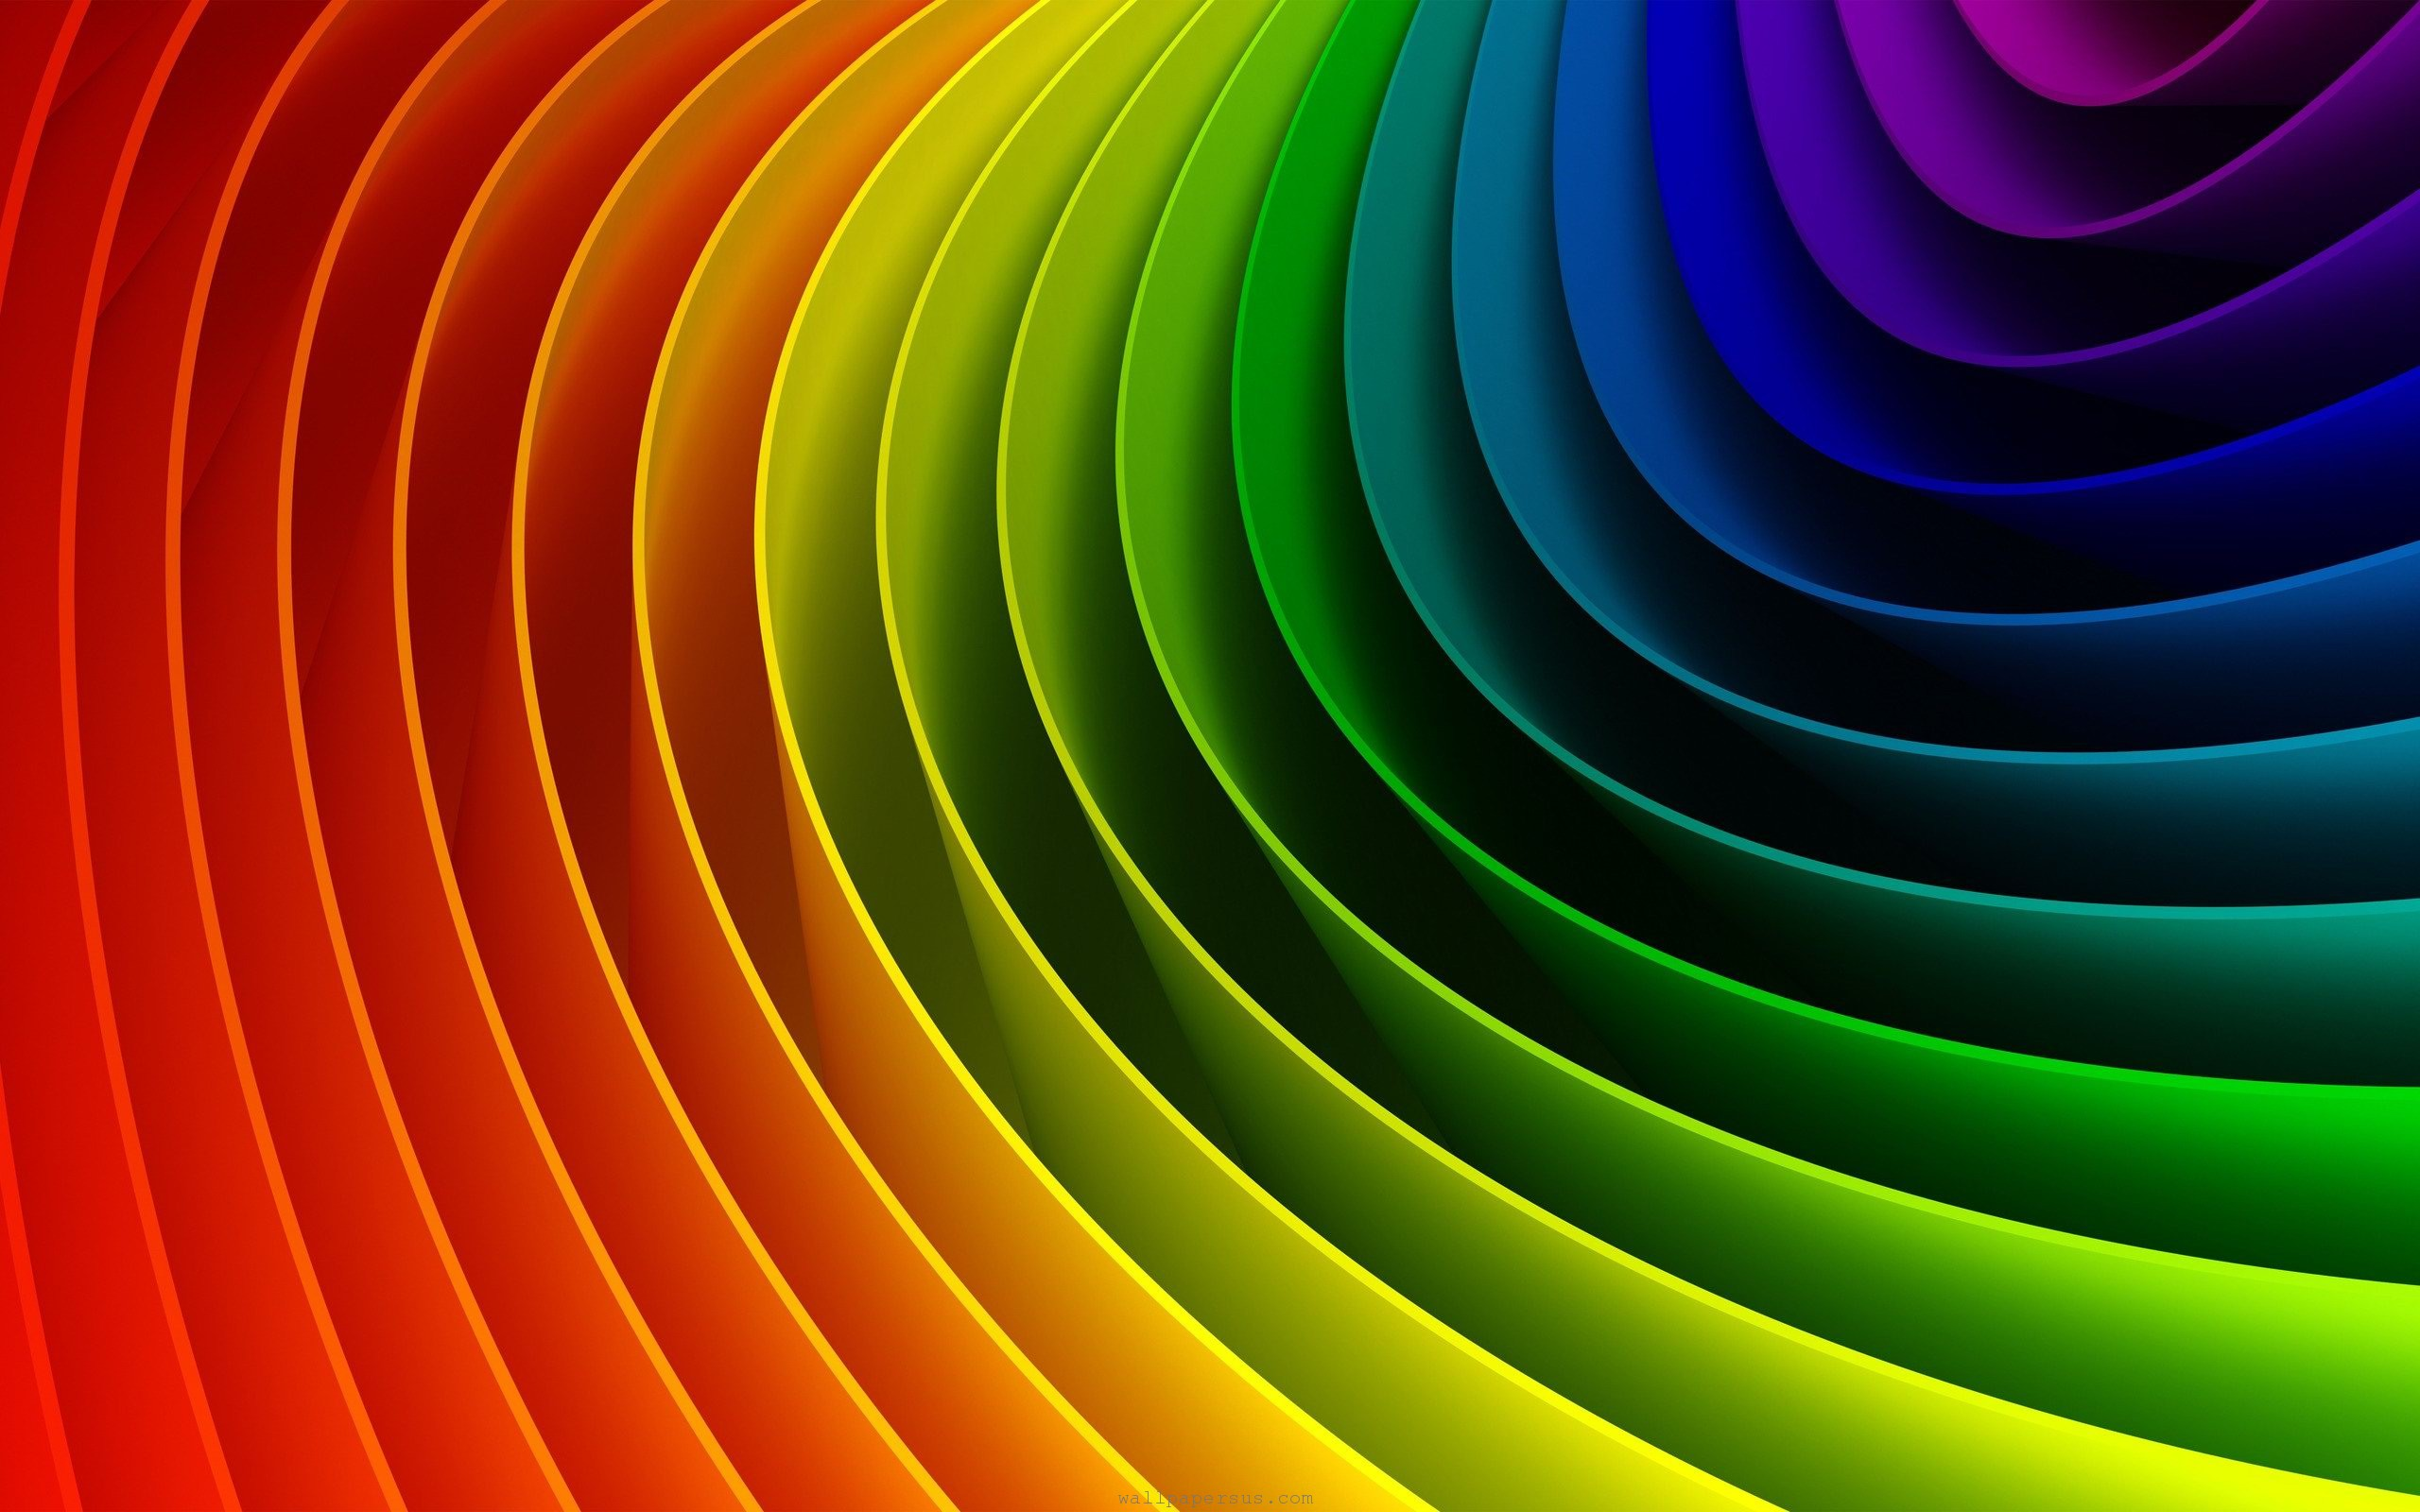 3D Abstract Colorful Background download wallpapersjpg 2560x1600